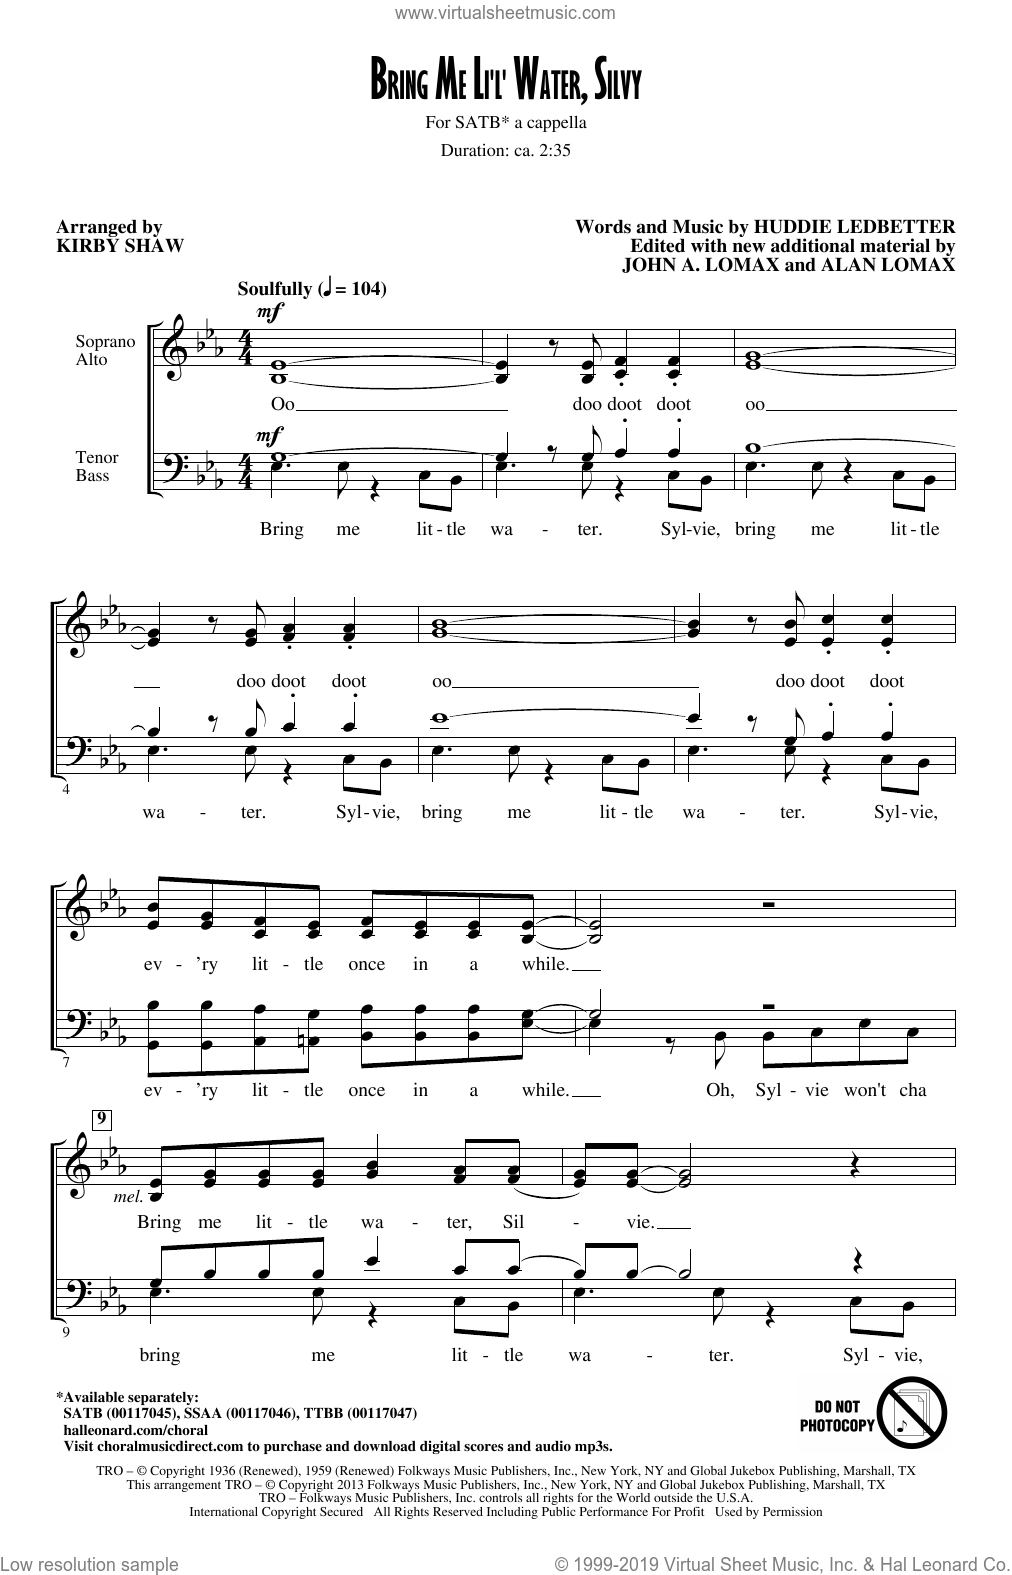 Bring Me Lil'l Water, Sylvie sheet music for choir and piano (SATB) by Kirby Shaw. Score Image Preview.